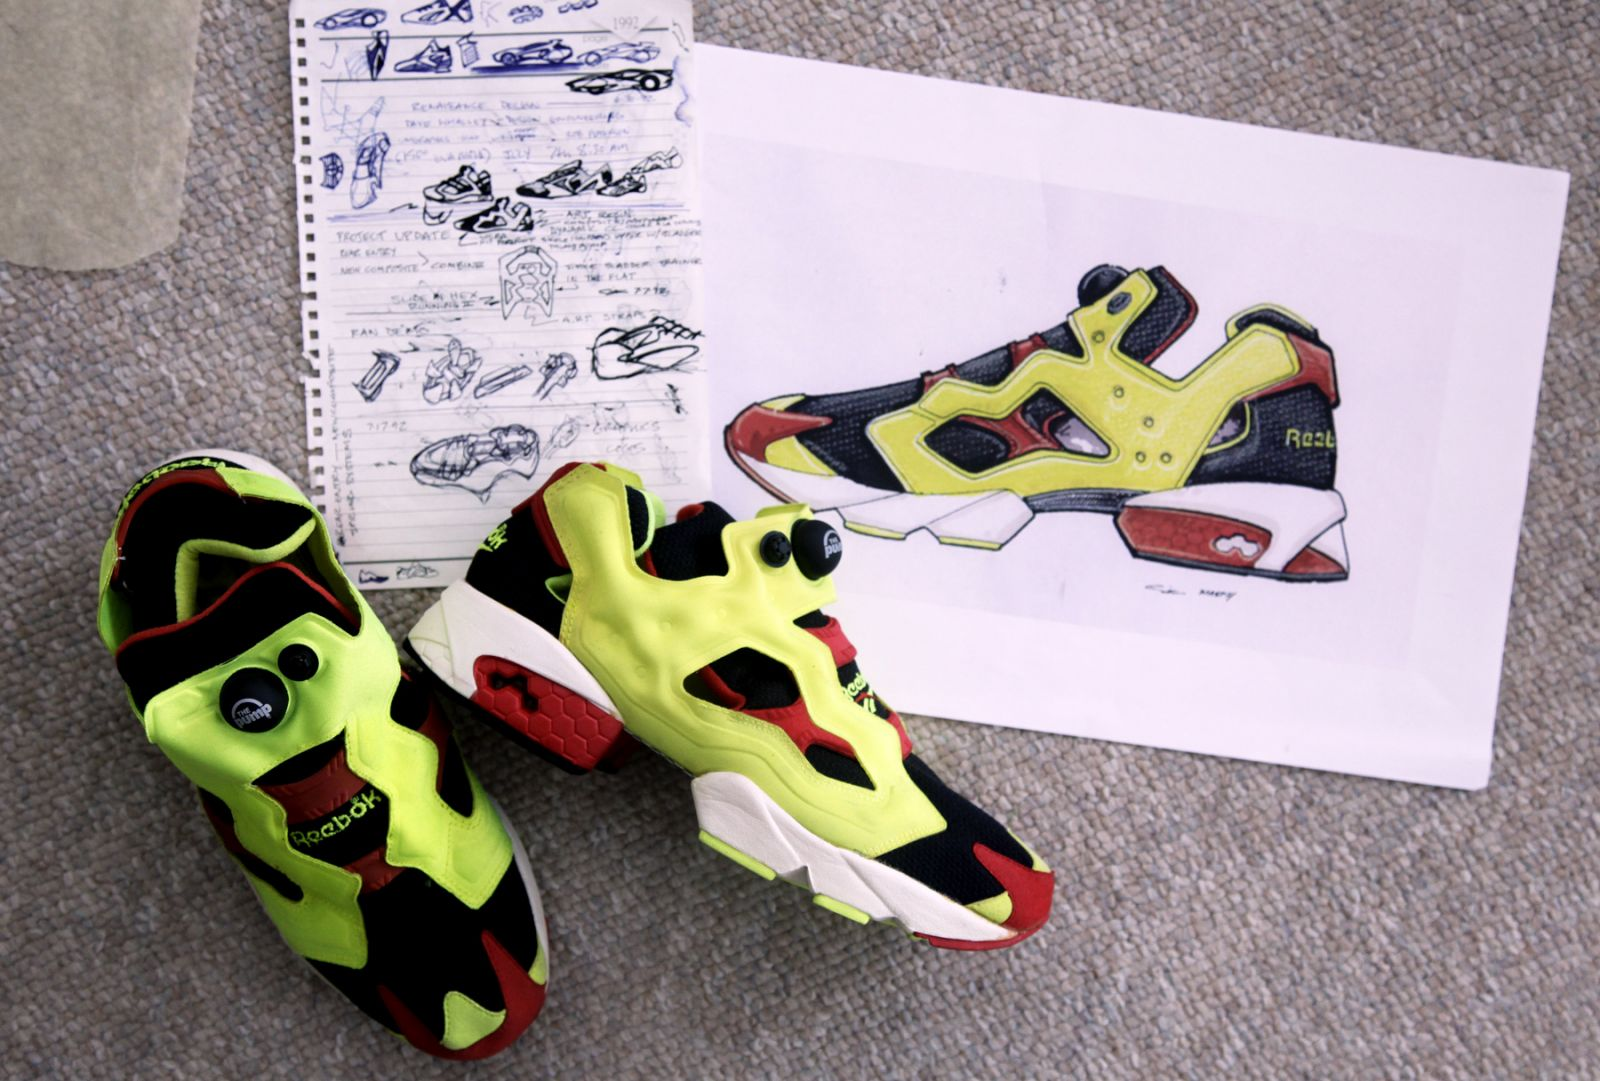 05d174481f24a0 I love the InstaPump Fury because it is a product that was designed not  only to marry form and function